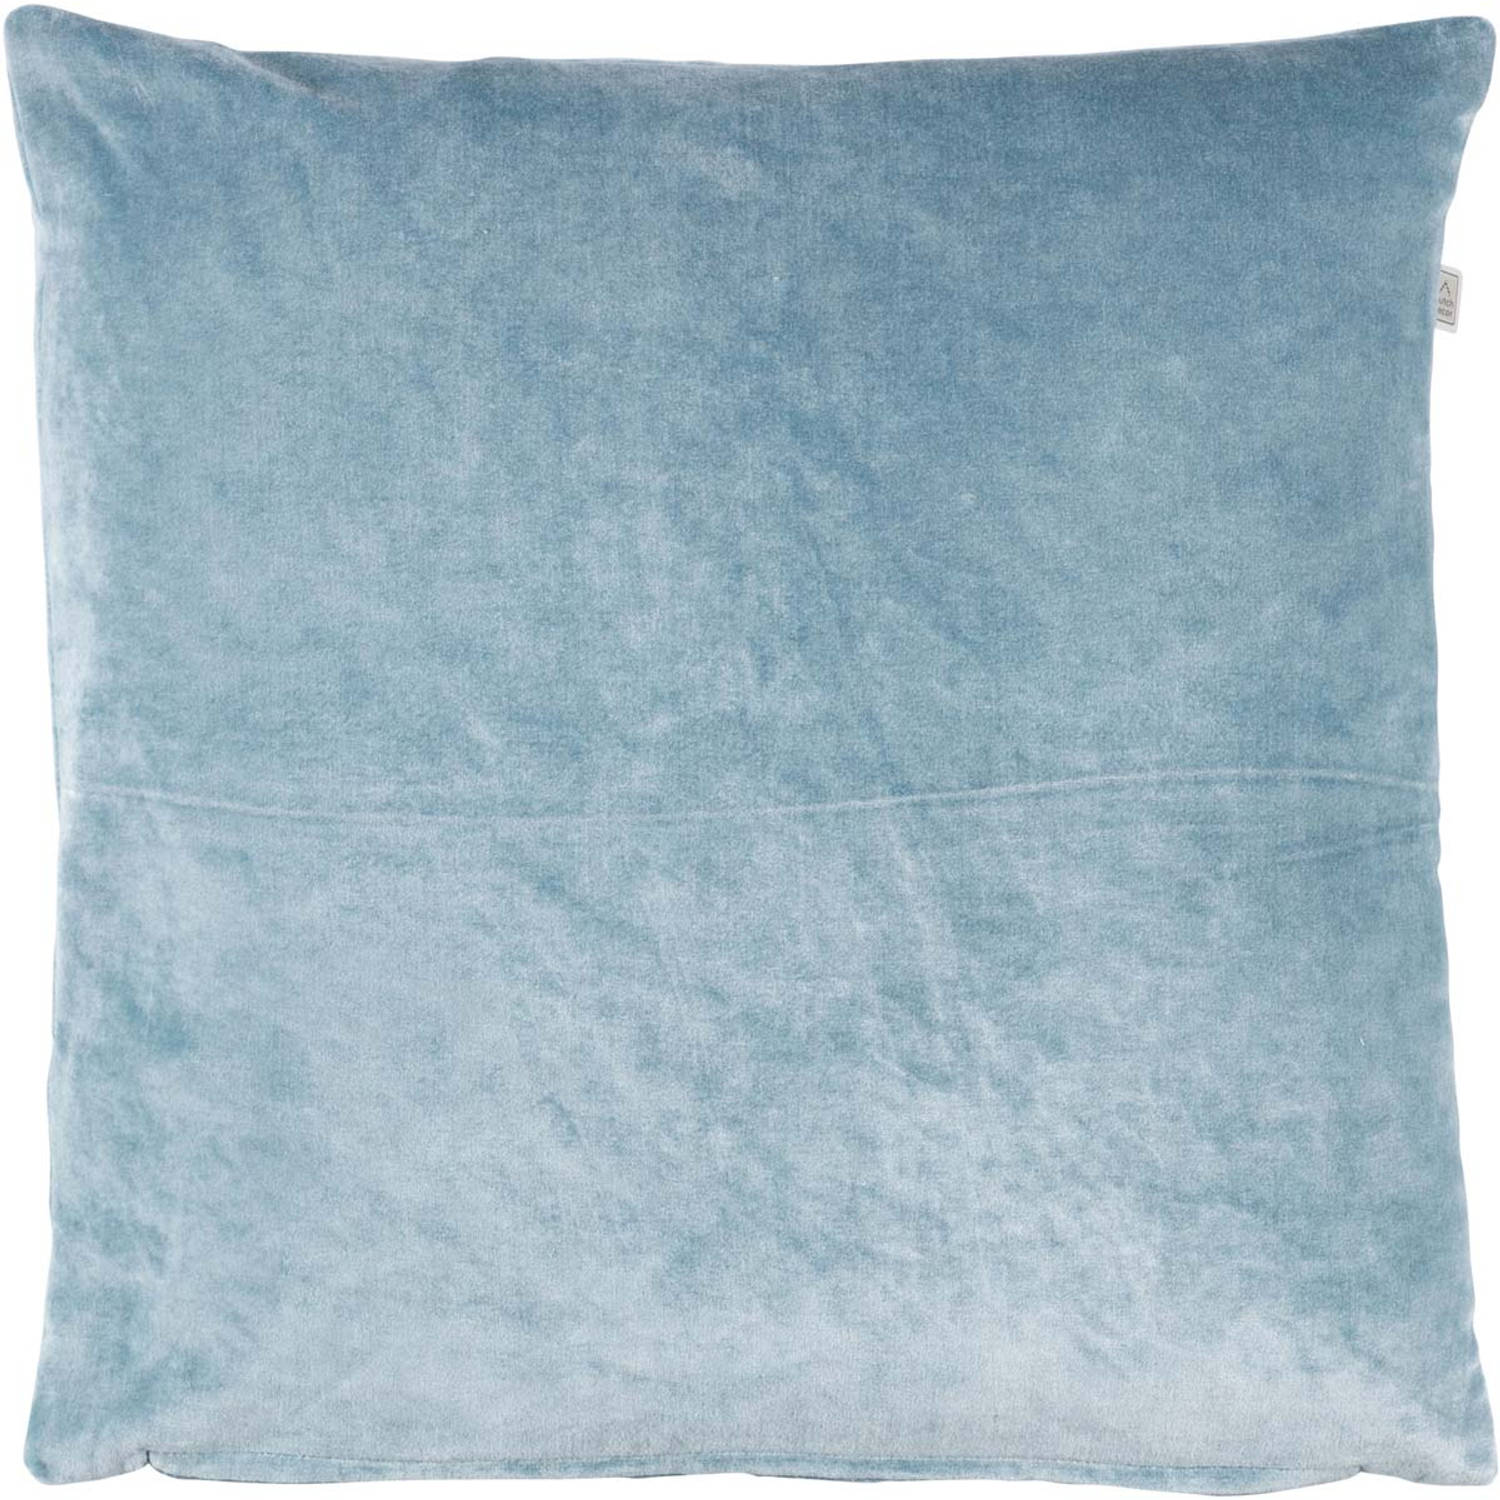 Dutch Decor Sierkussen Cido 45x45 cm blue